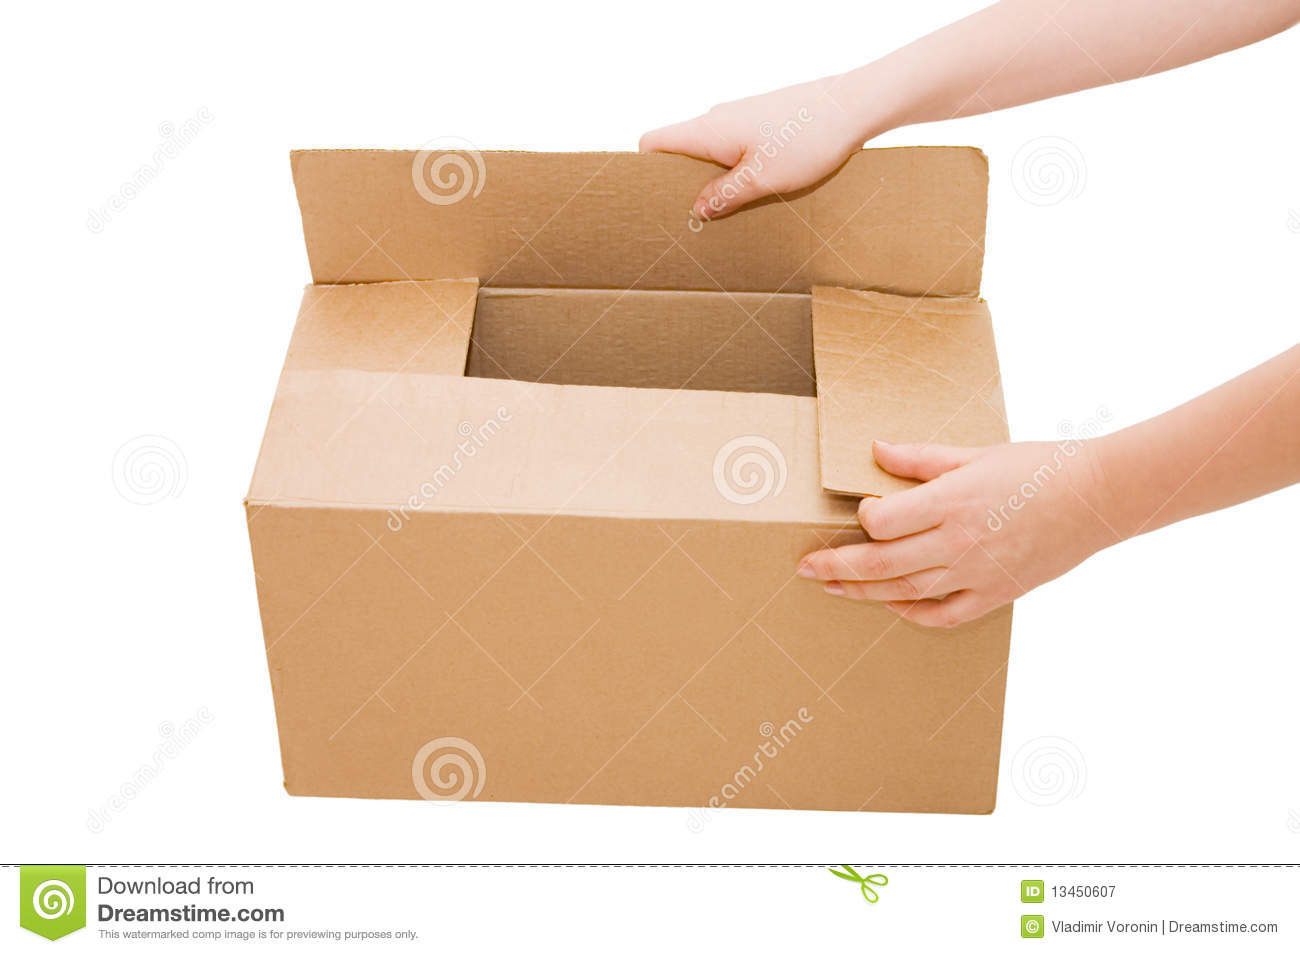 hands open a cardboard box isolated stock image image of packaging christmas 13450607. Black Bedroom Furniture Sets. Home Design Ideas